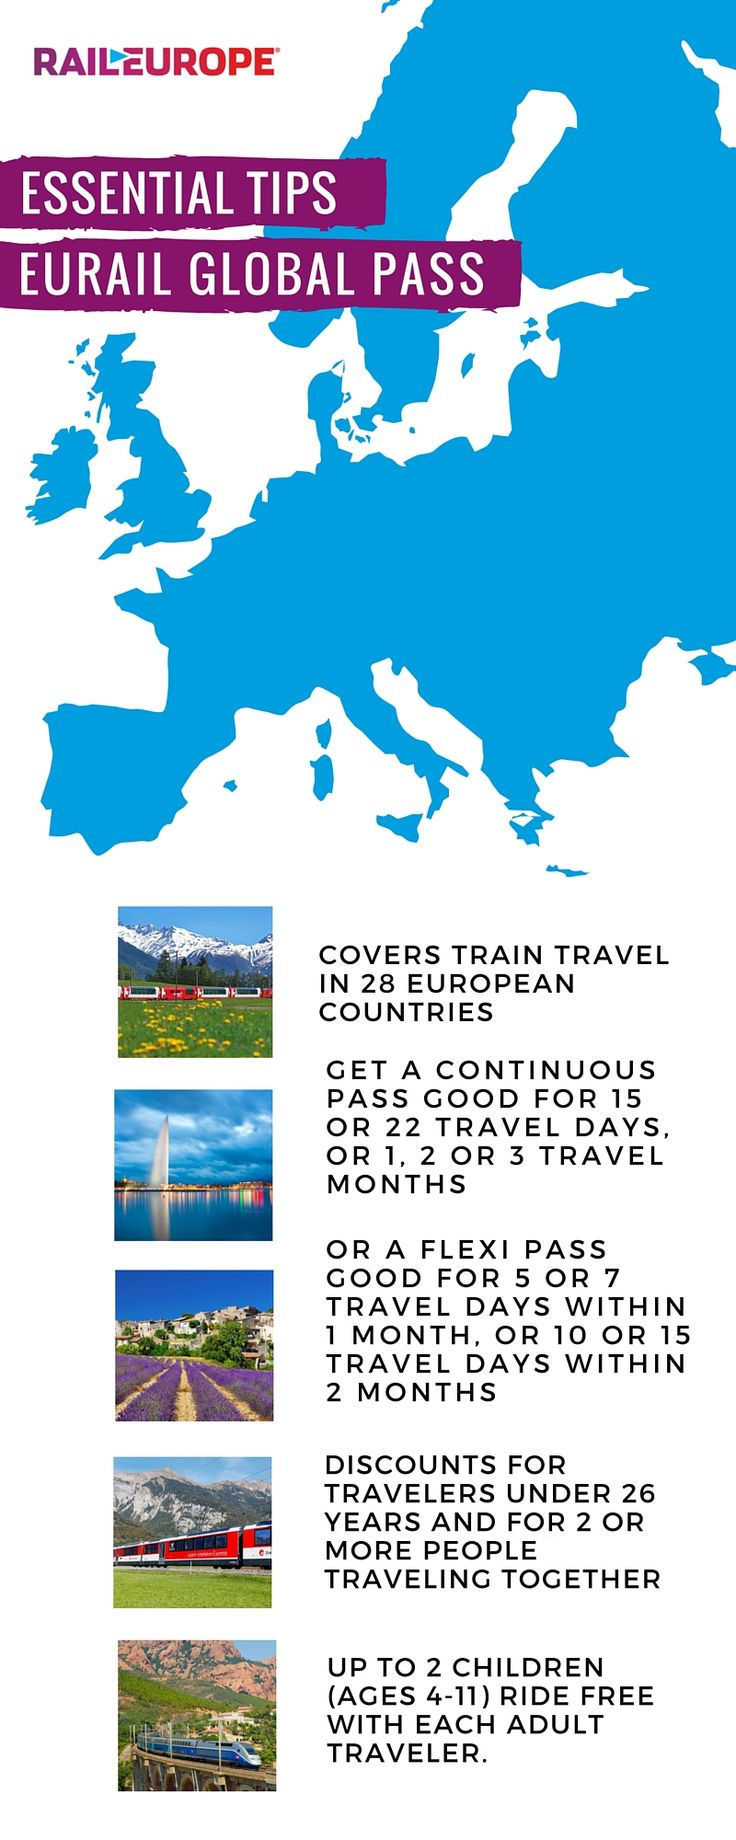 Essential tips for traveling with a #Eurail Global Pass, one of the most popular rail passes for travel in Europe